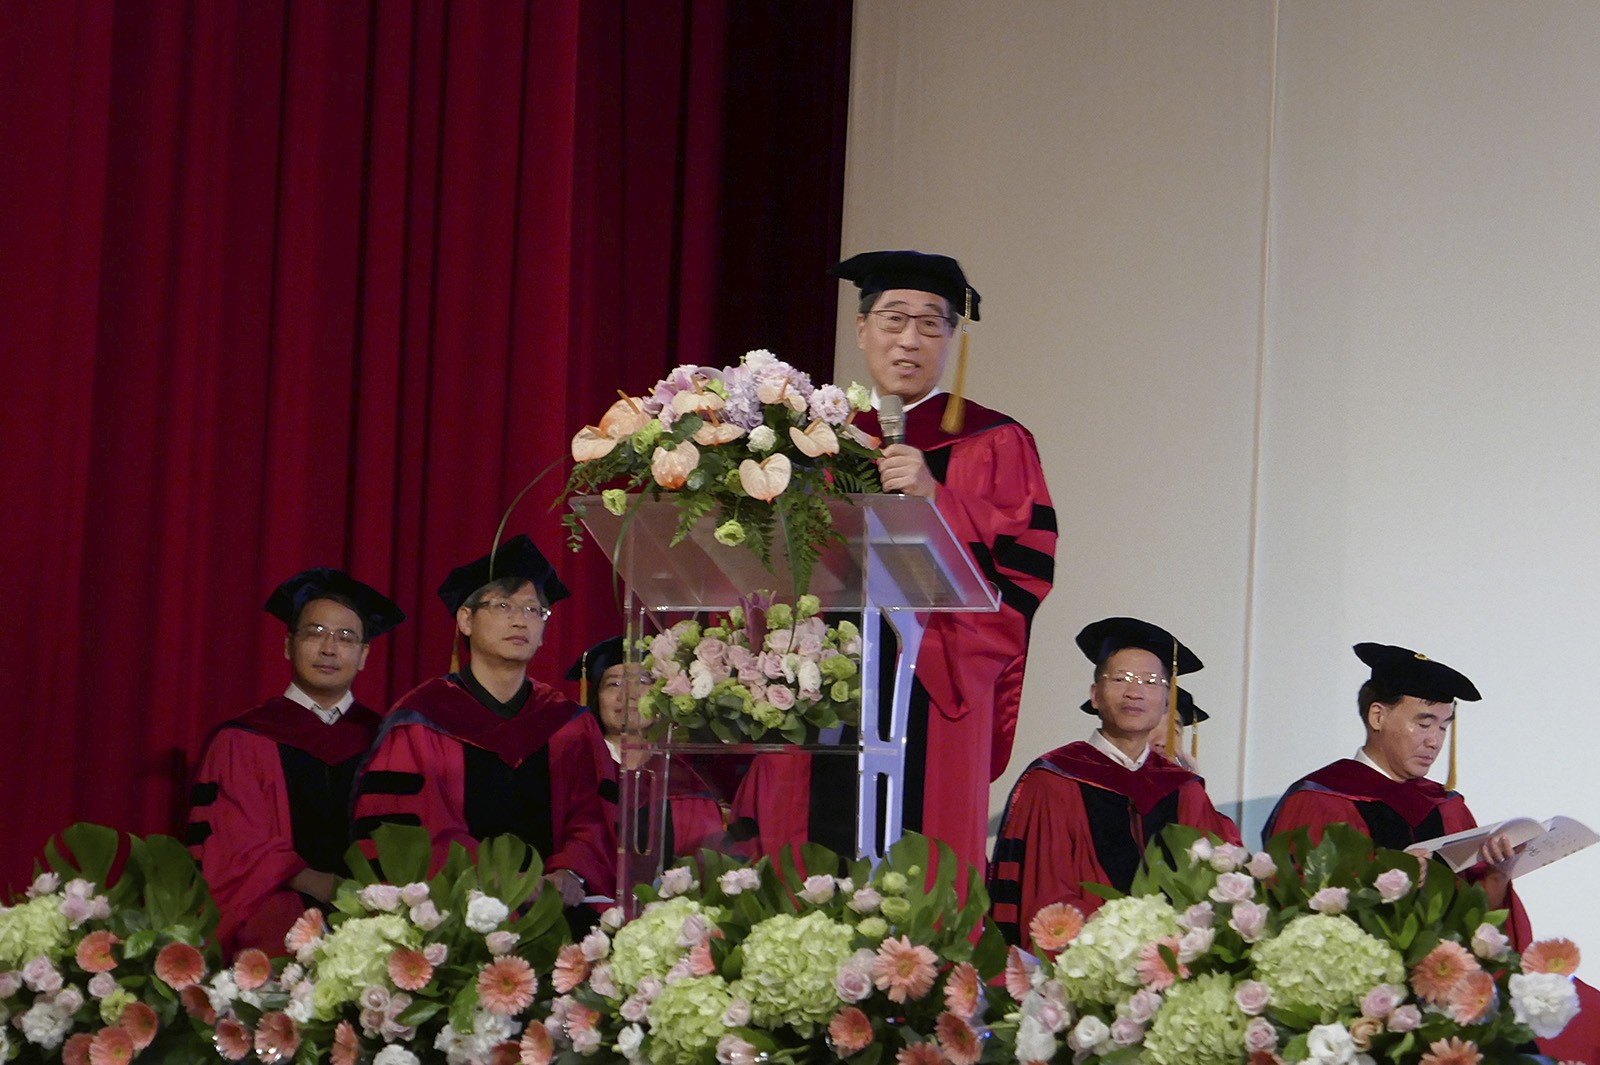 President Kuo delivers a talk at the inauguration ceremony for graduates of NCTU.